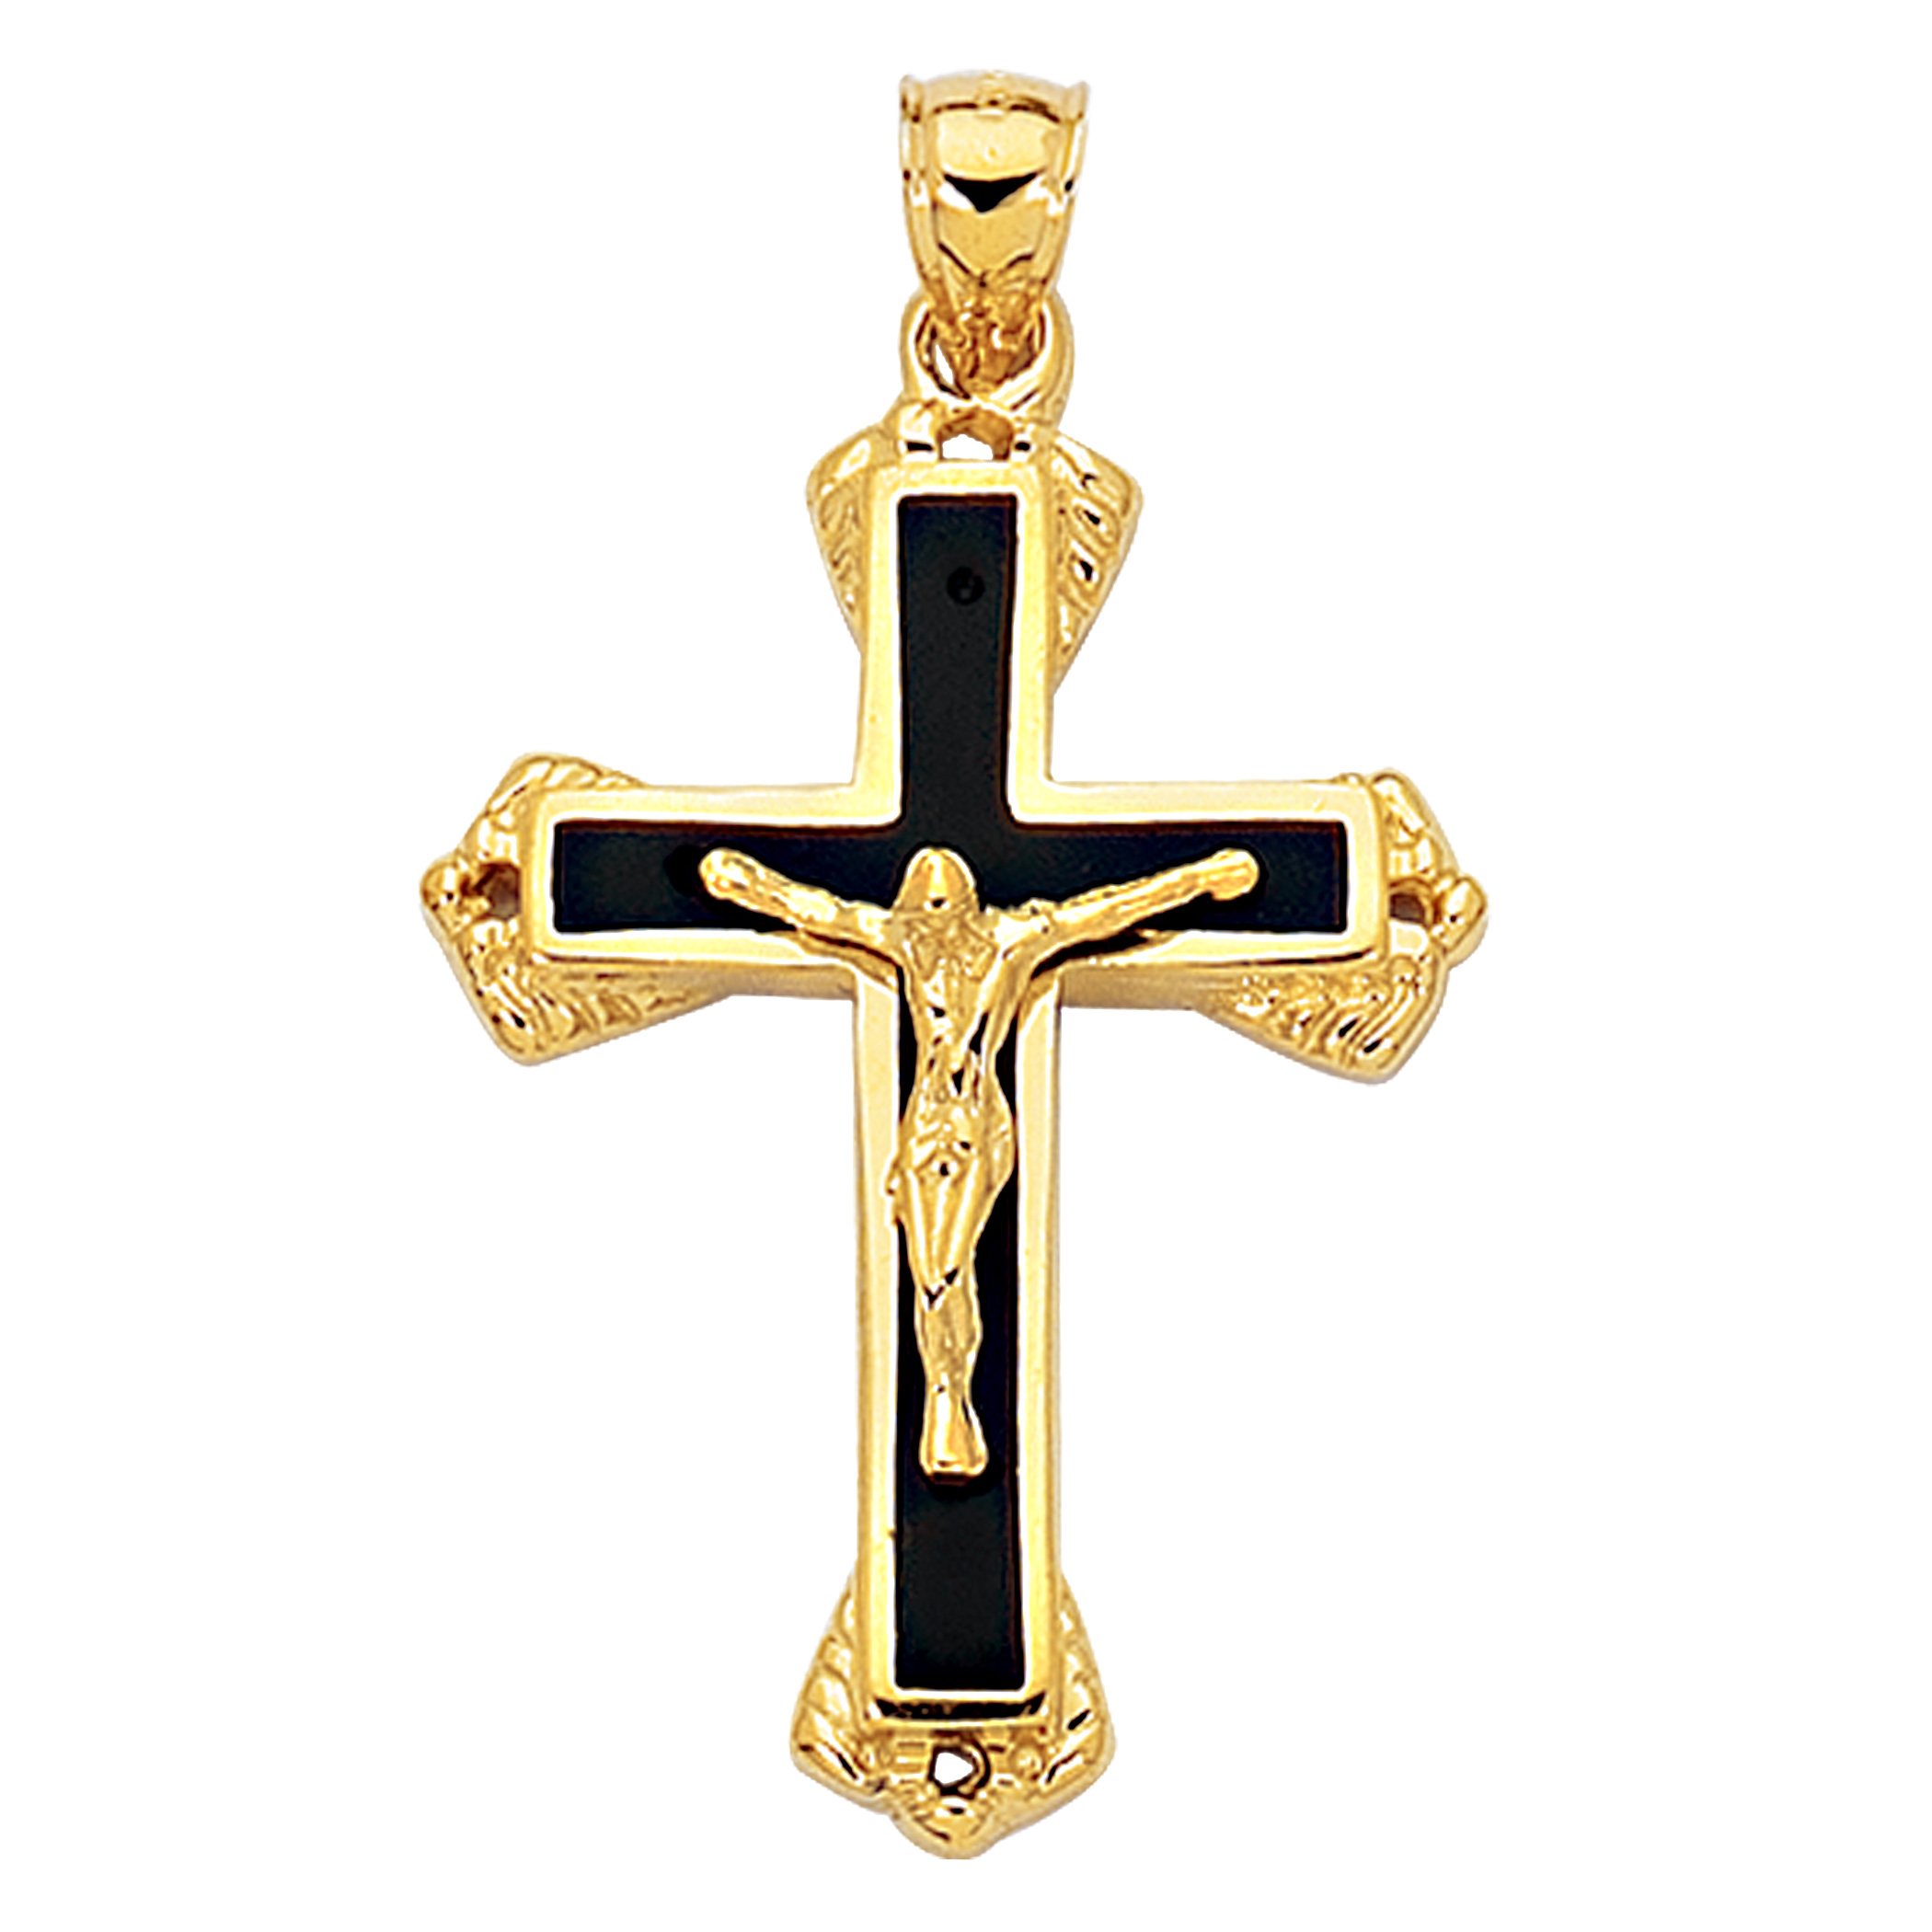 14k Yellow Gold And Black Enamel Crucifix Cross Mens Pendant